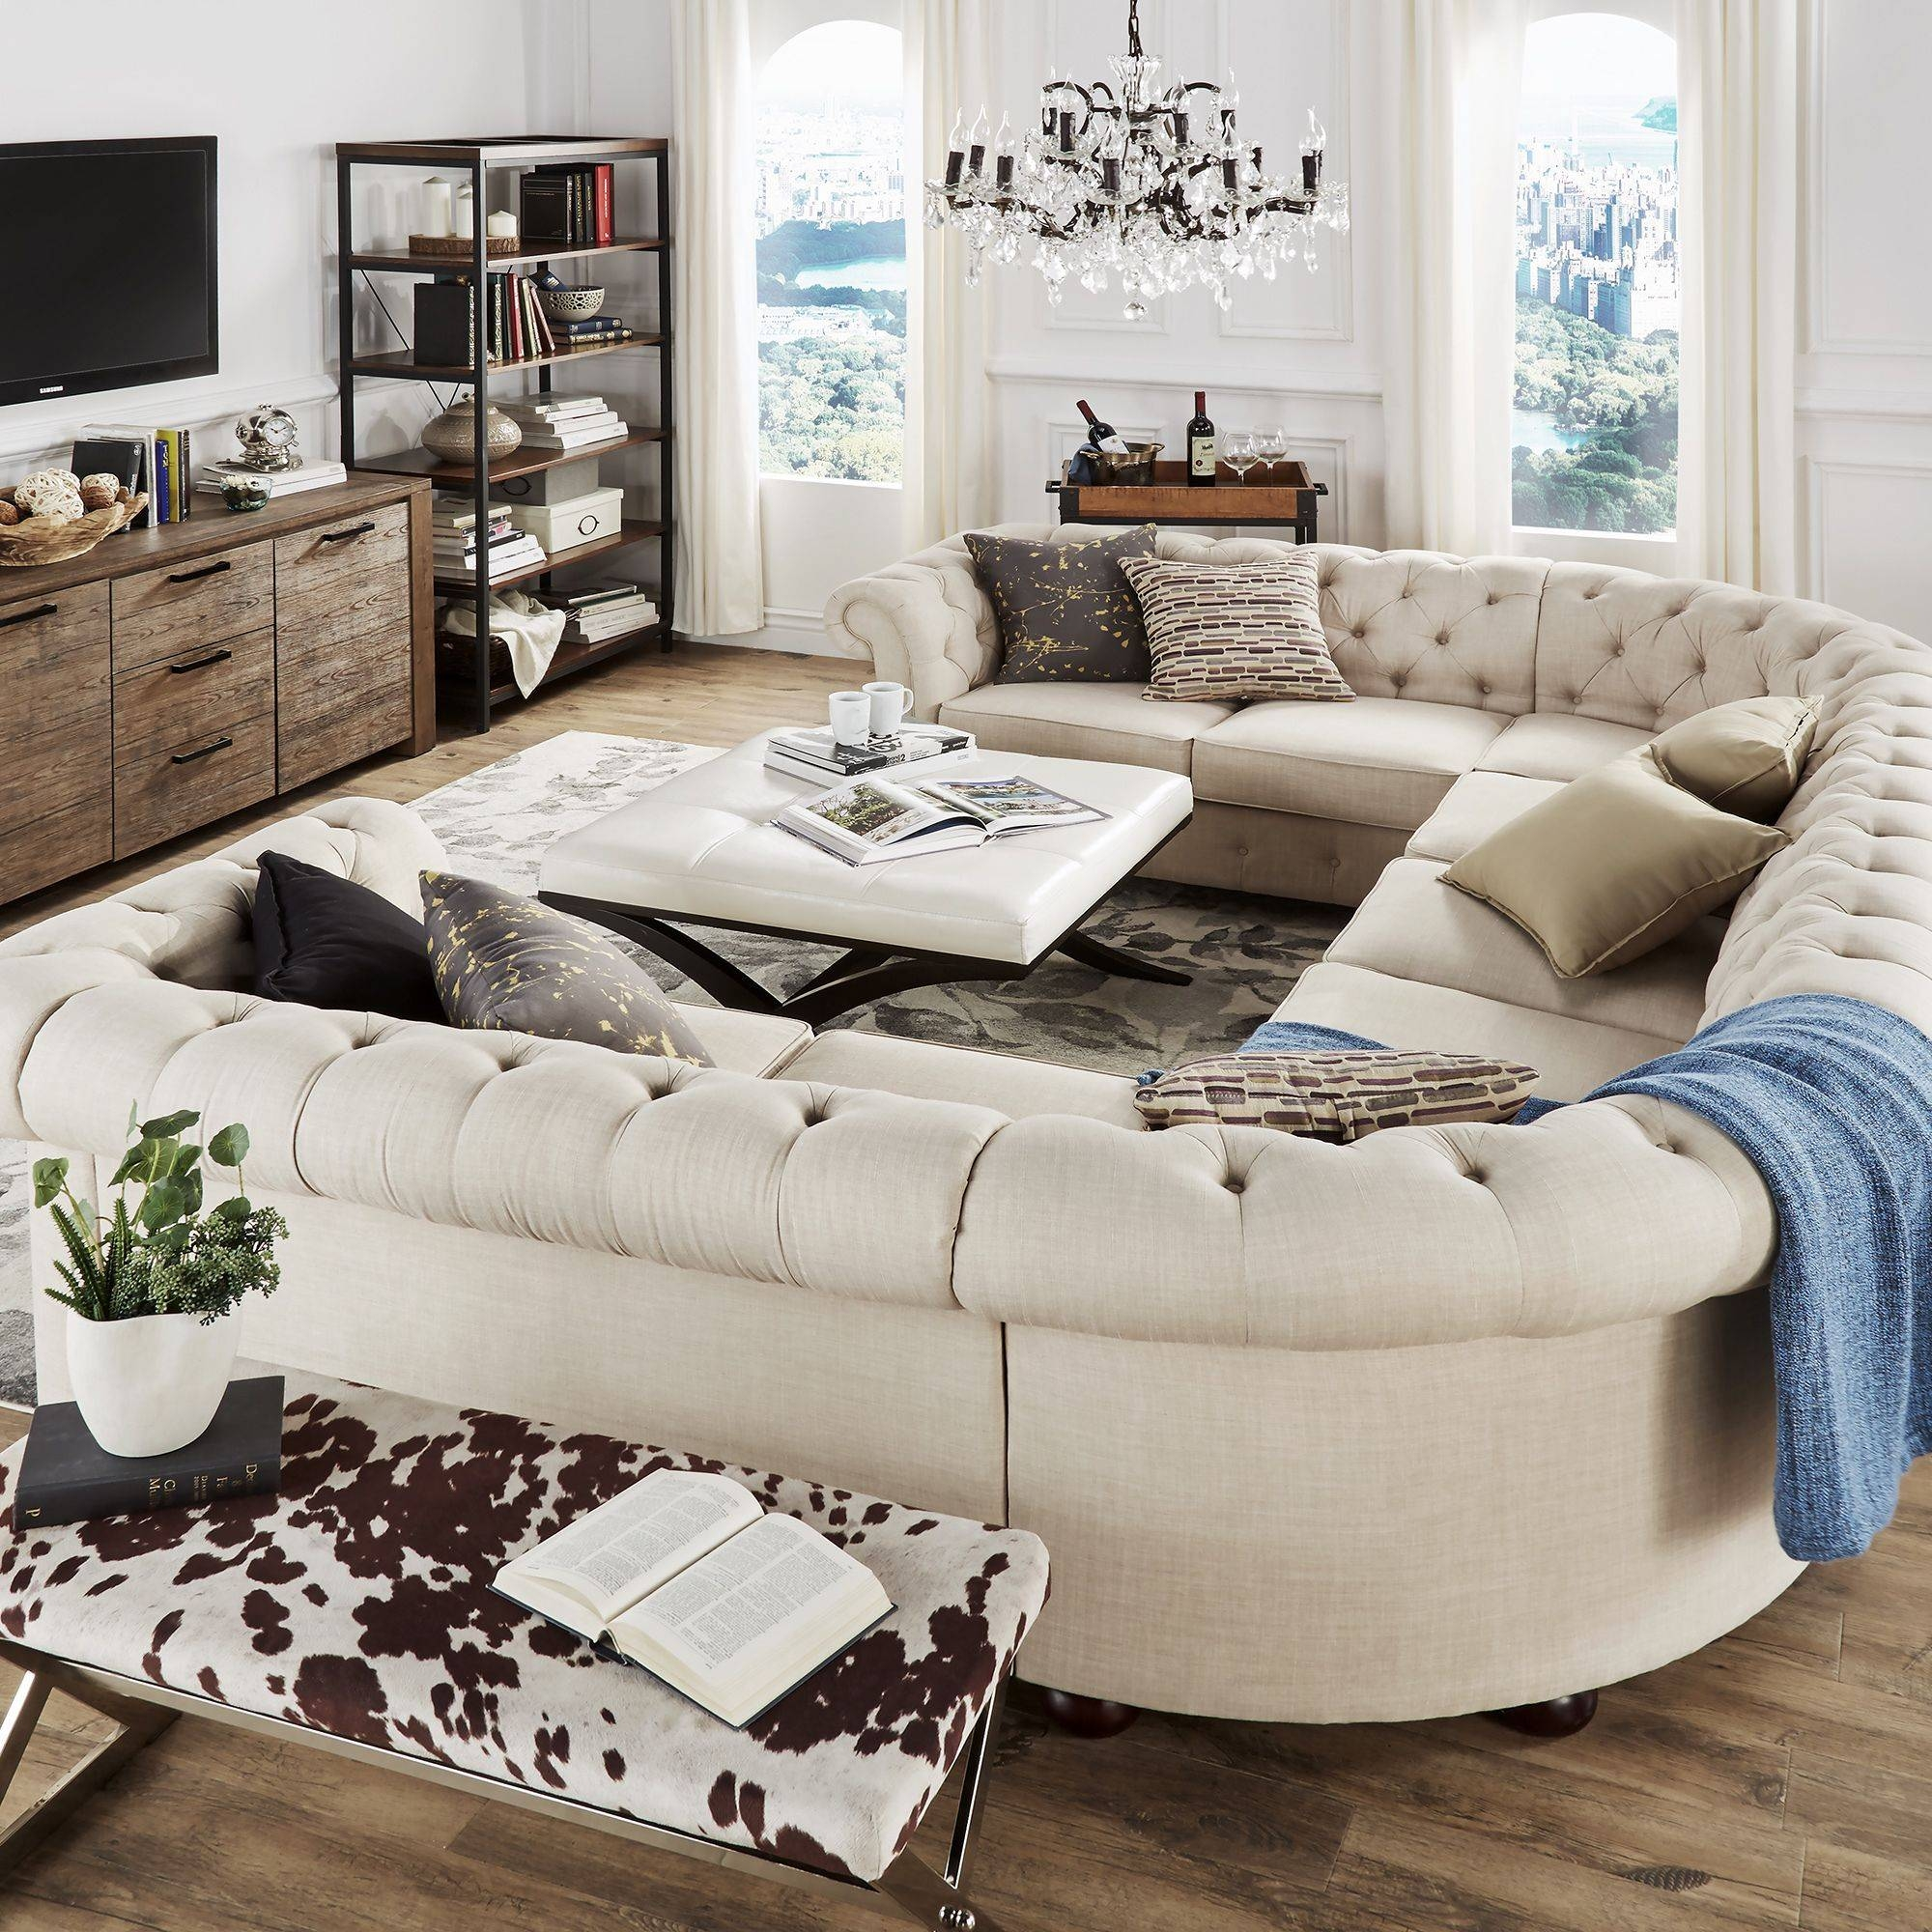 Furniture Sale Extra 15 Off At Target Com: 15 Best Ideas Of Lovesac Sofas